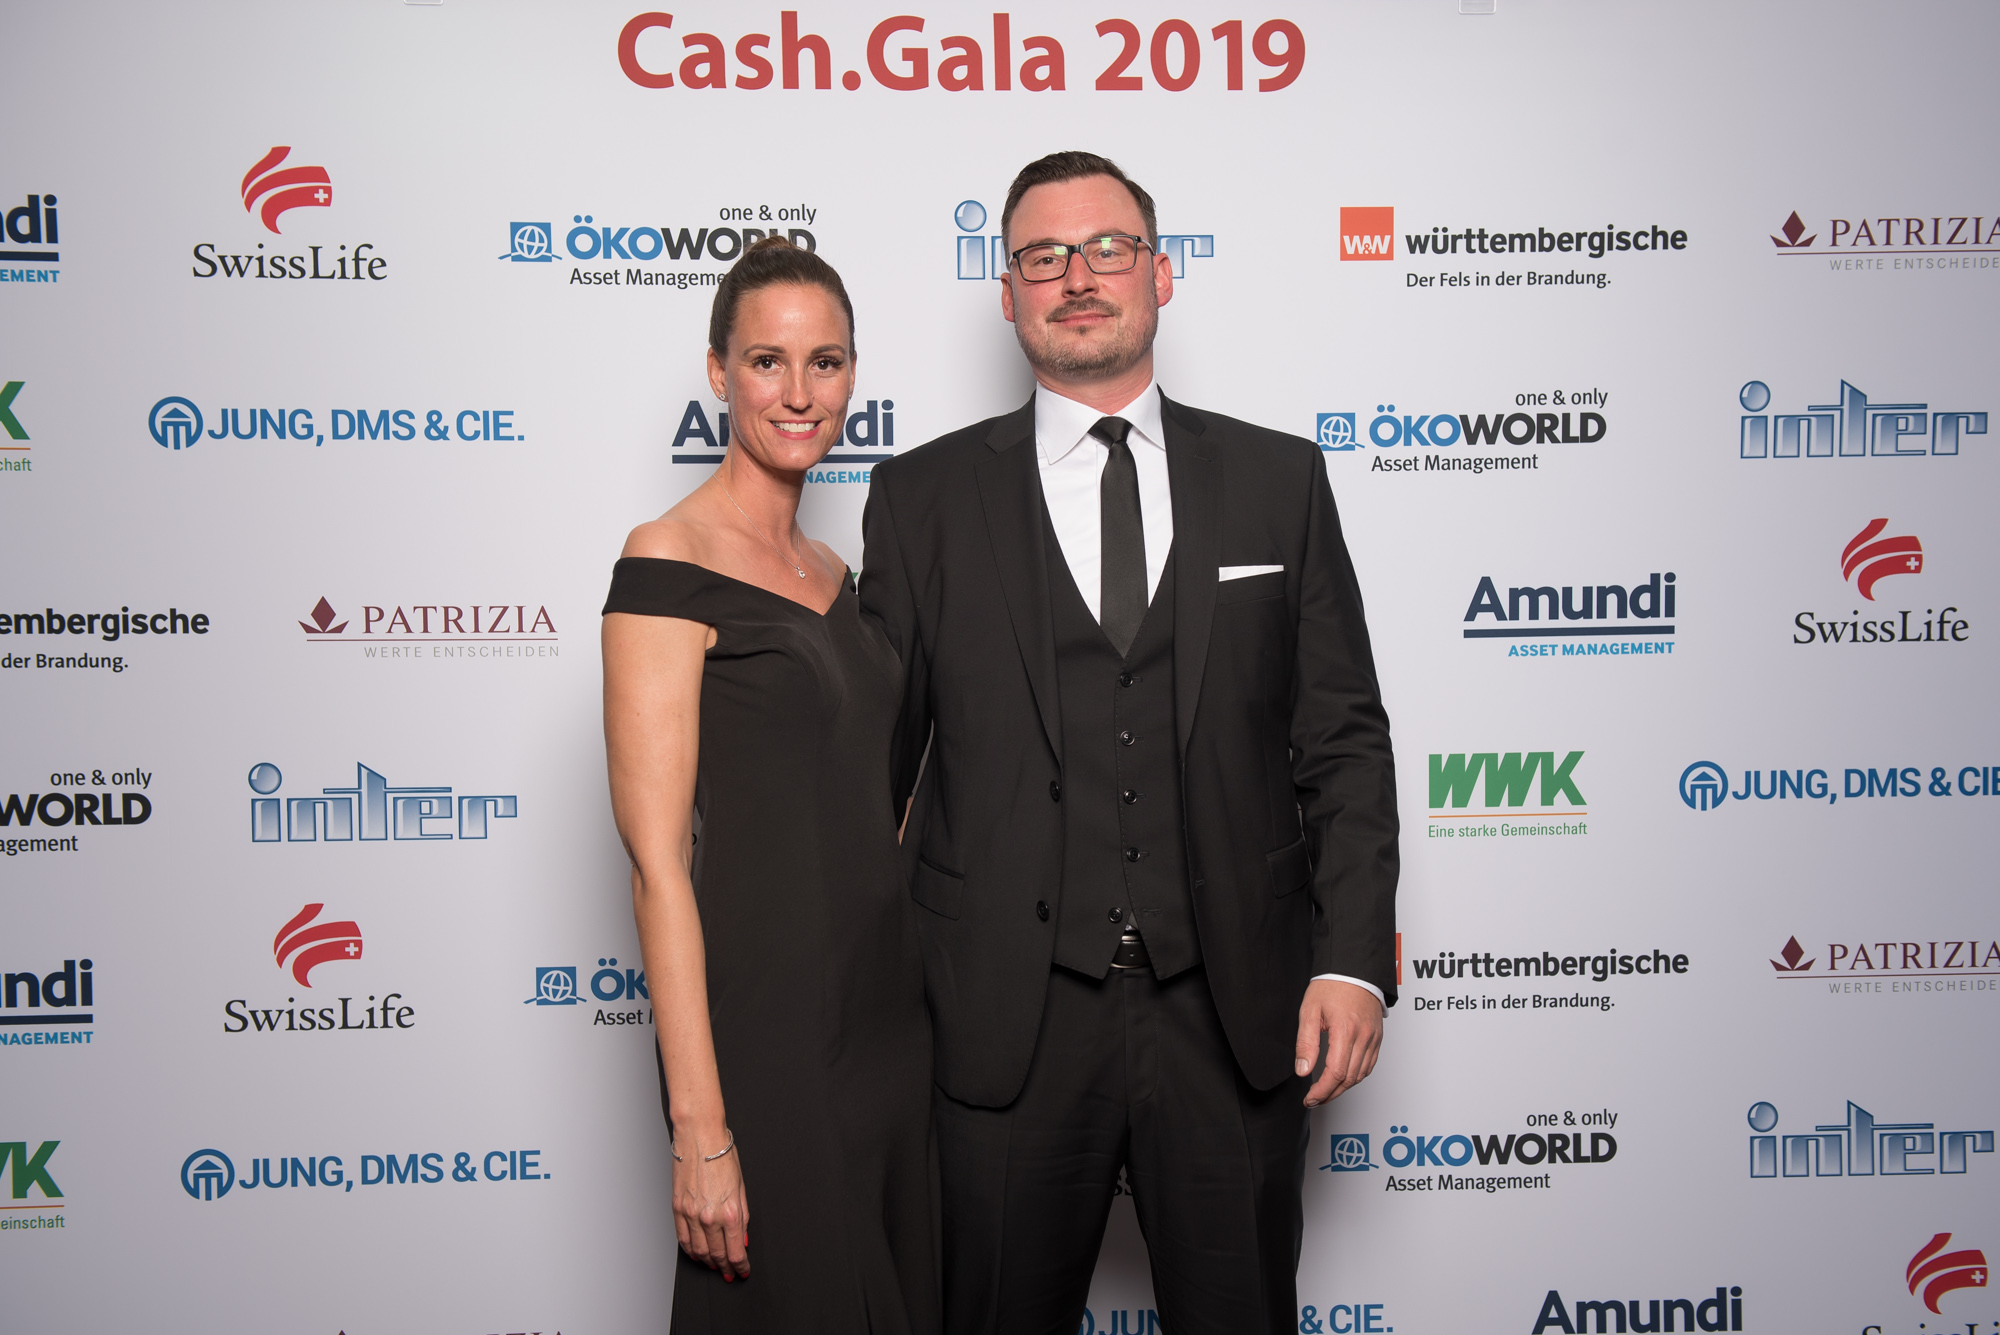 CashGala 2019 0040 AM DSC7058 in Cash.Gala 2019